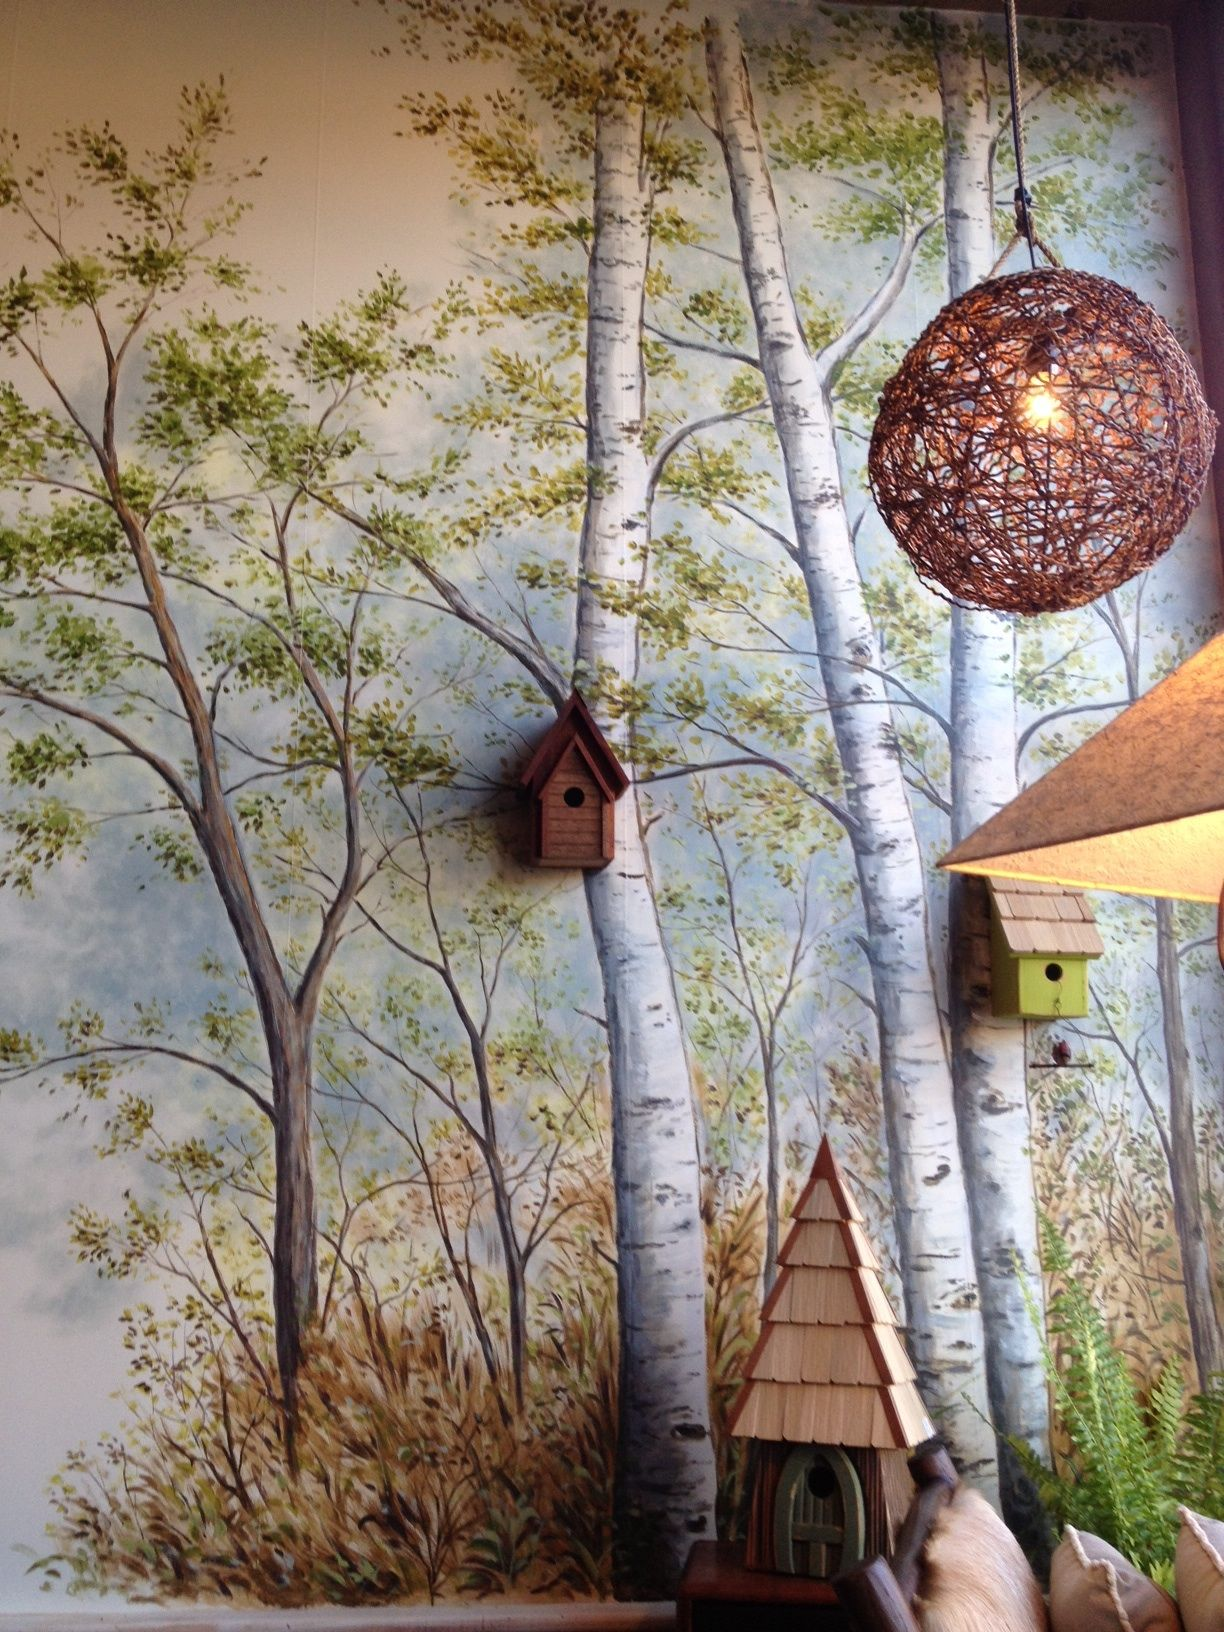 Country wall murals choice image home wall decoration ideas painted wall mural trees google search school library ideas painted wall mural trees google search amipublicfo amipublicfo Images